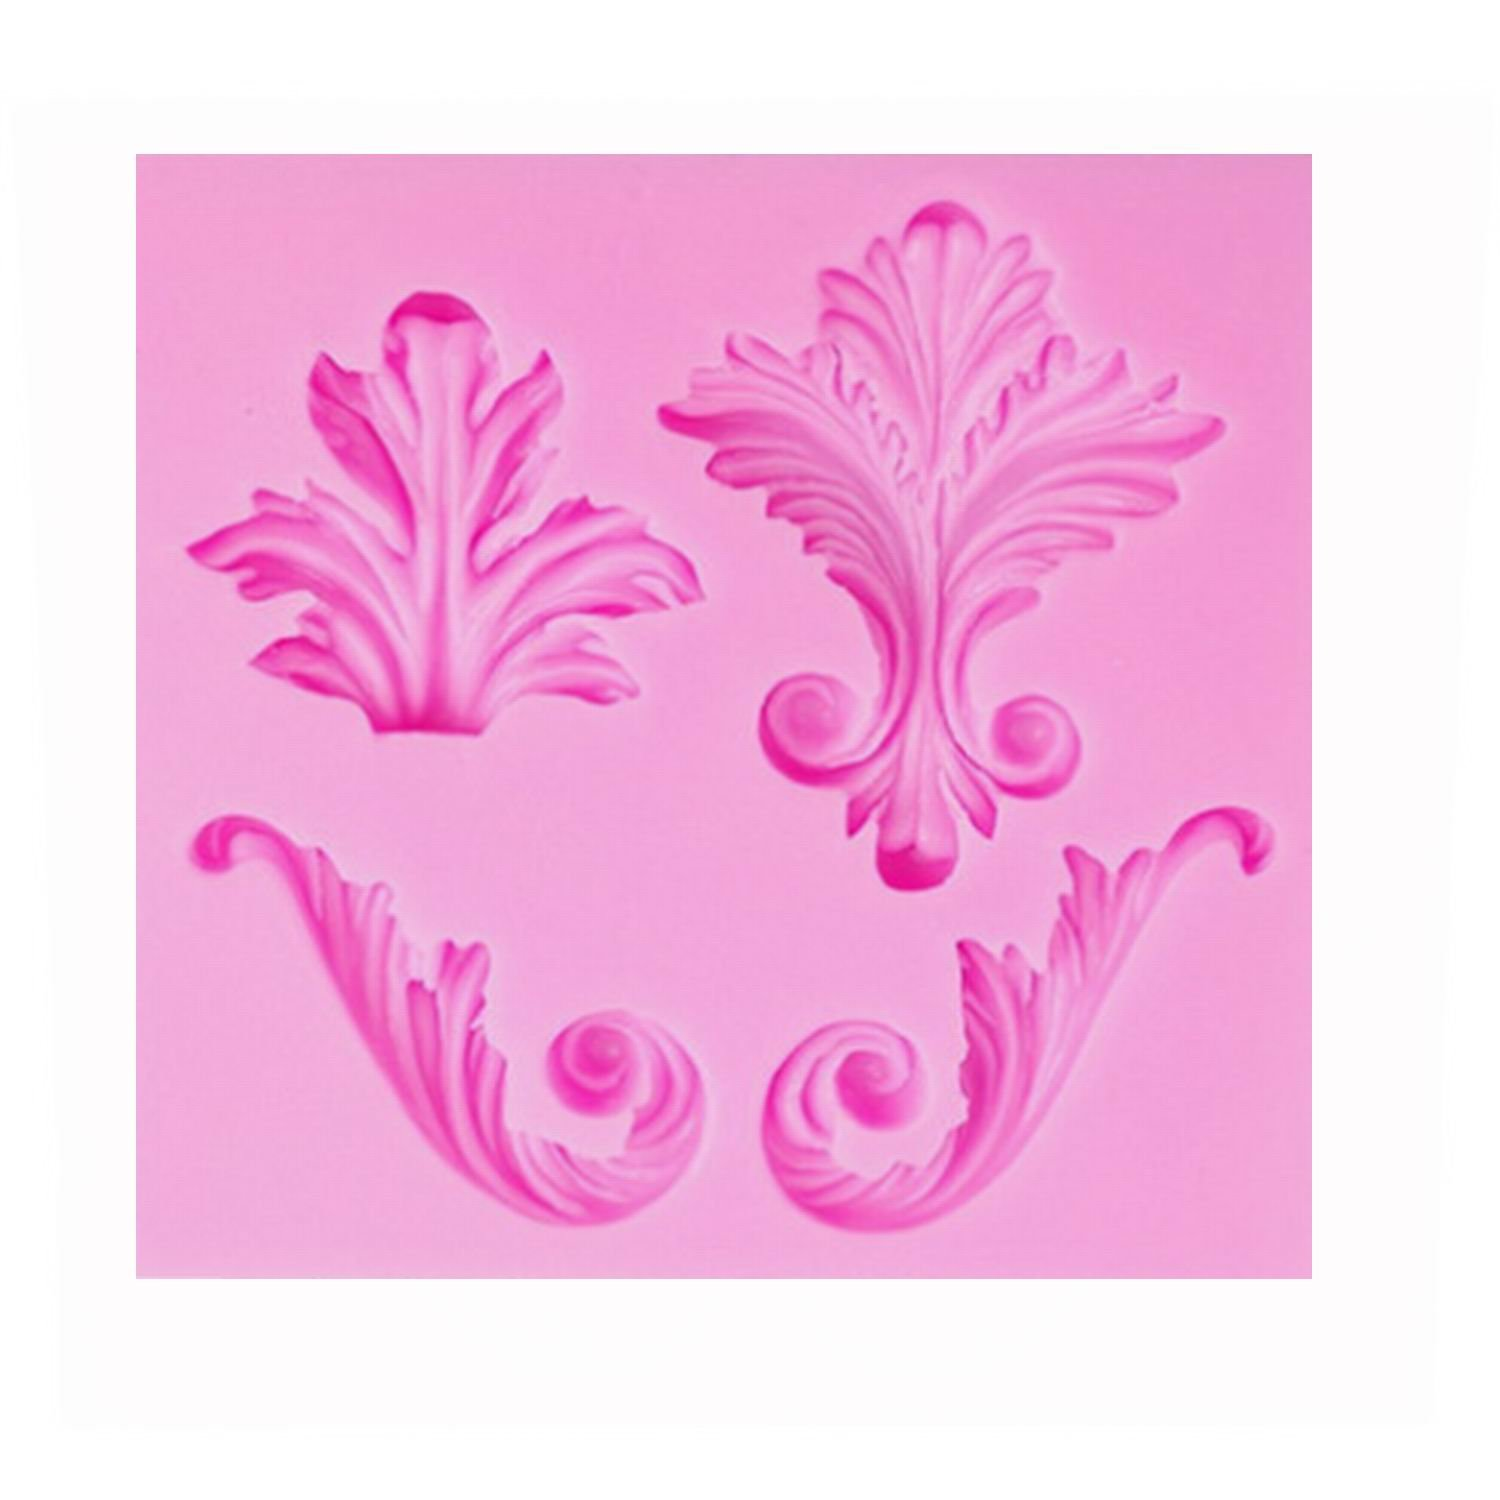 Palker sky Vintage Curlicue Lace and Scroll Silicone Mold for Cake Border Cupcake Topper Decoration, Sugar paste, Chocolate, Fondant, Resin, Polymer Clay Projects